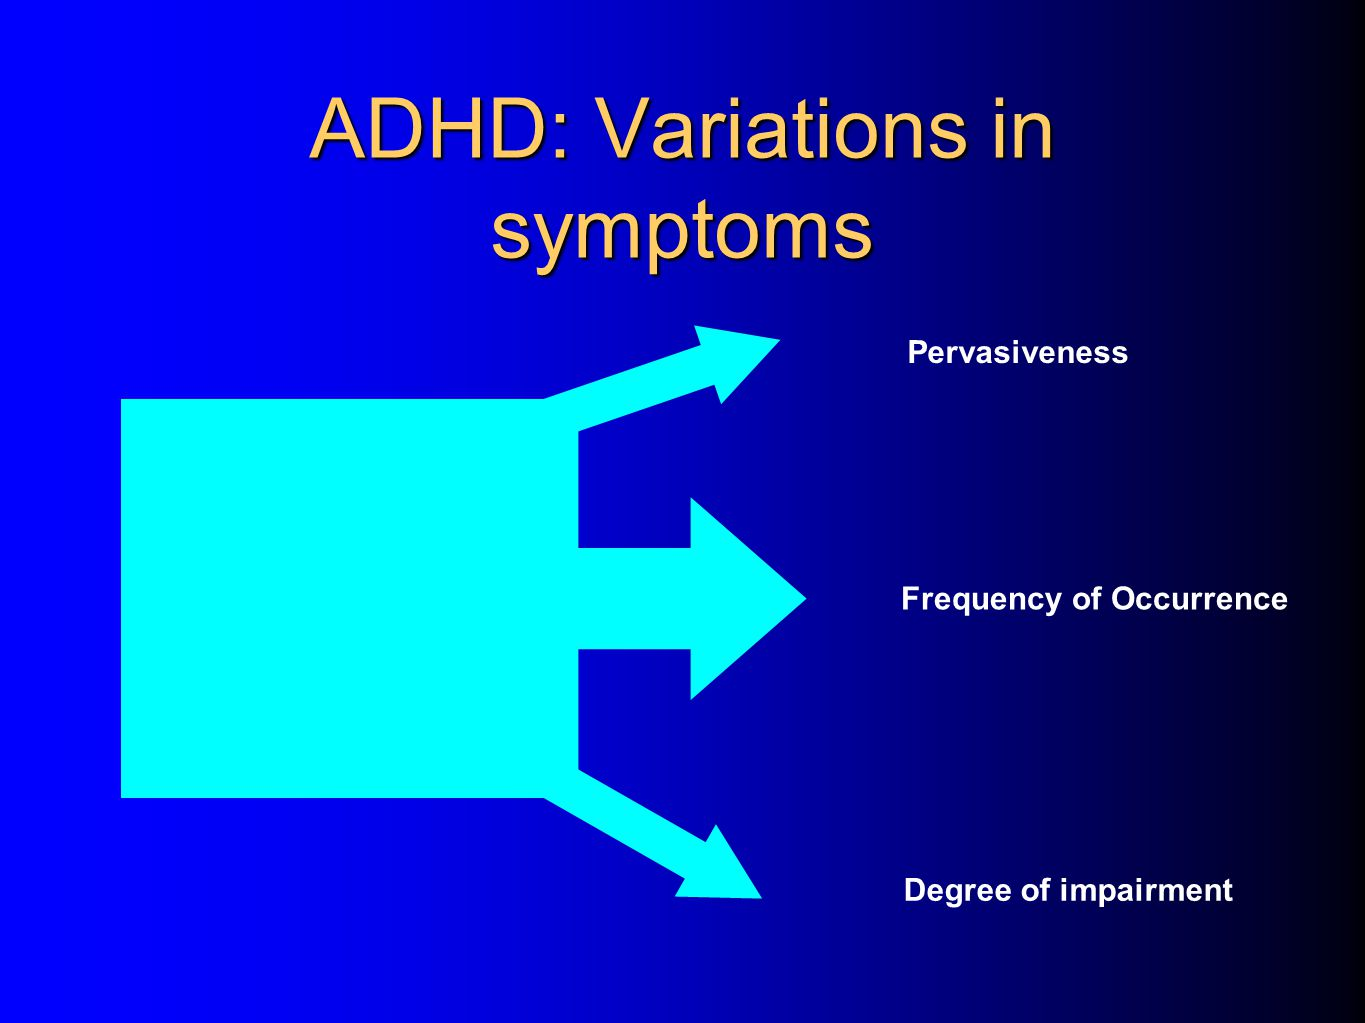 ADHD: Variations in symptoms Pervasiveness Frequency of Occurrence Degree of impairment